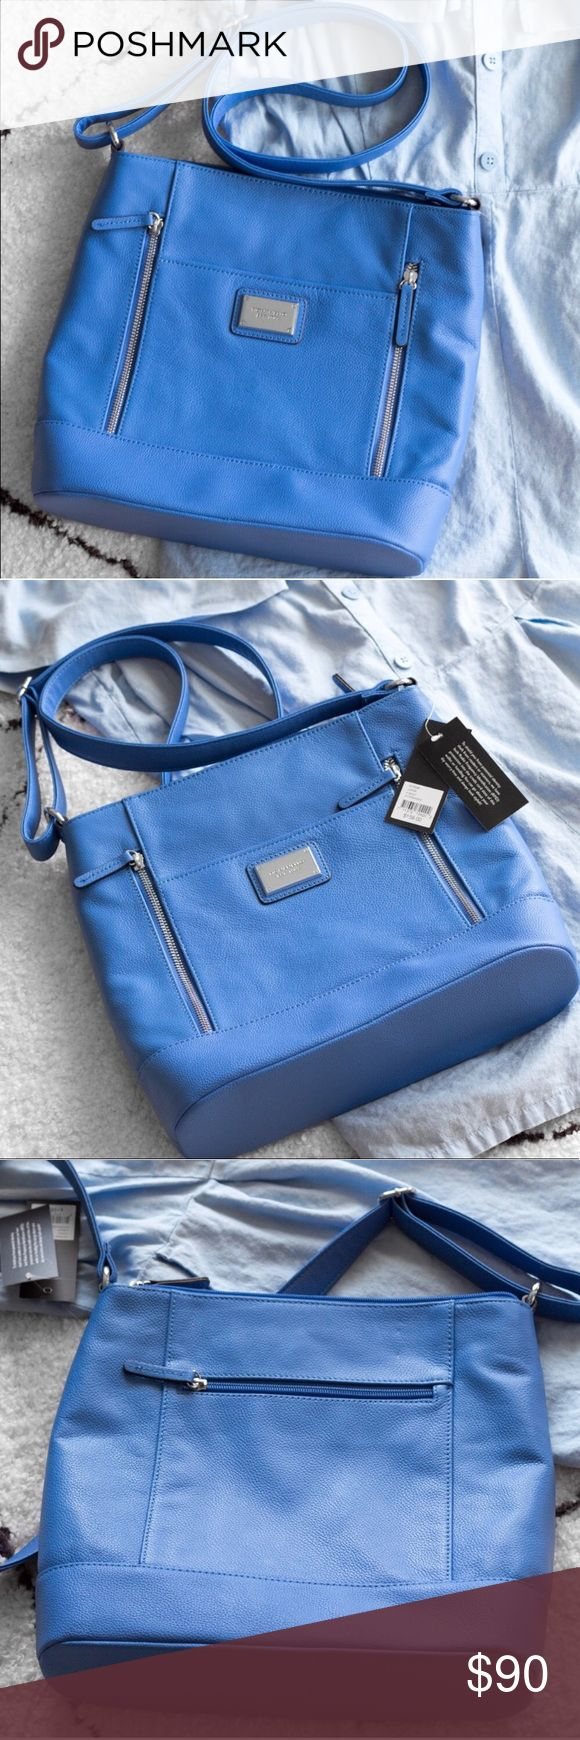 Tignanello Hydrangea Large Crossbody Bag Purse Brand new with tags. It has so many pockets and there's two separate sections inside the bag with pockets as well. Bags Crossbody Bags